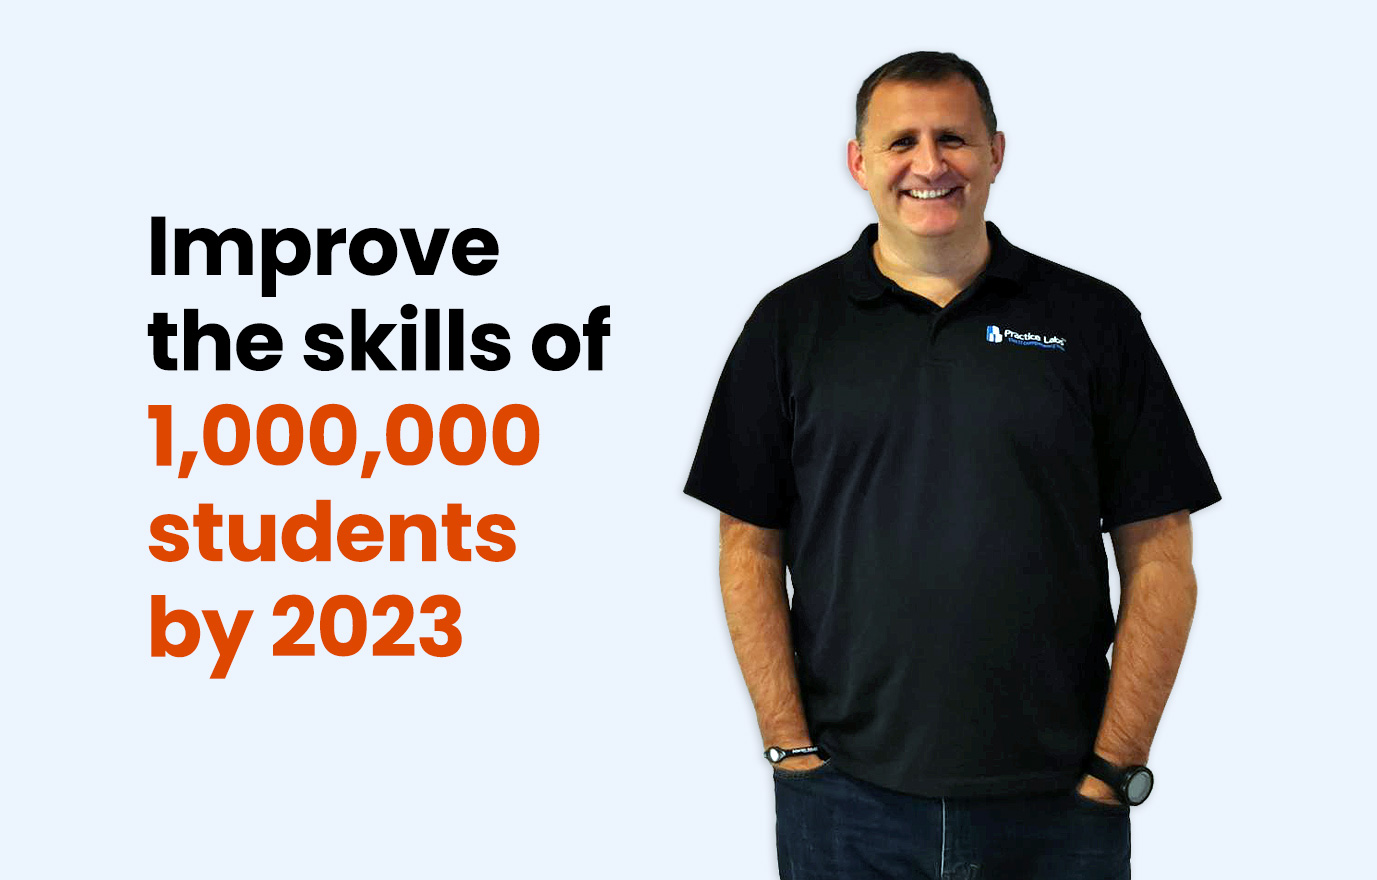 Improve the skills of 1,000,000 students by 2023